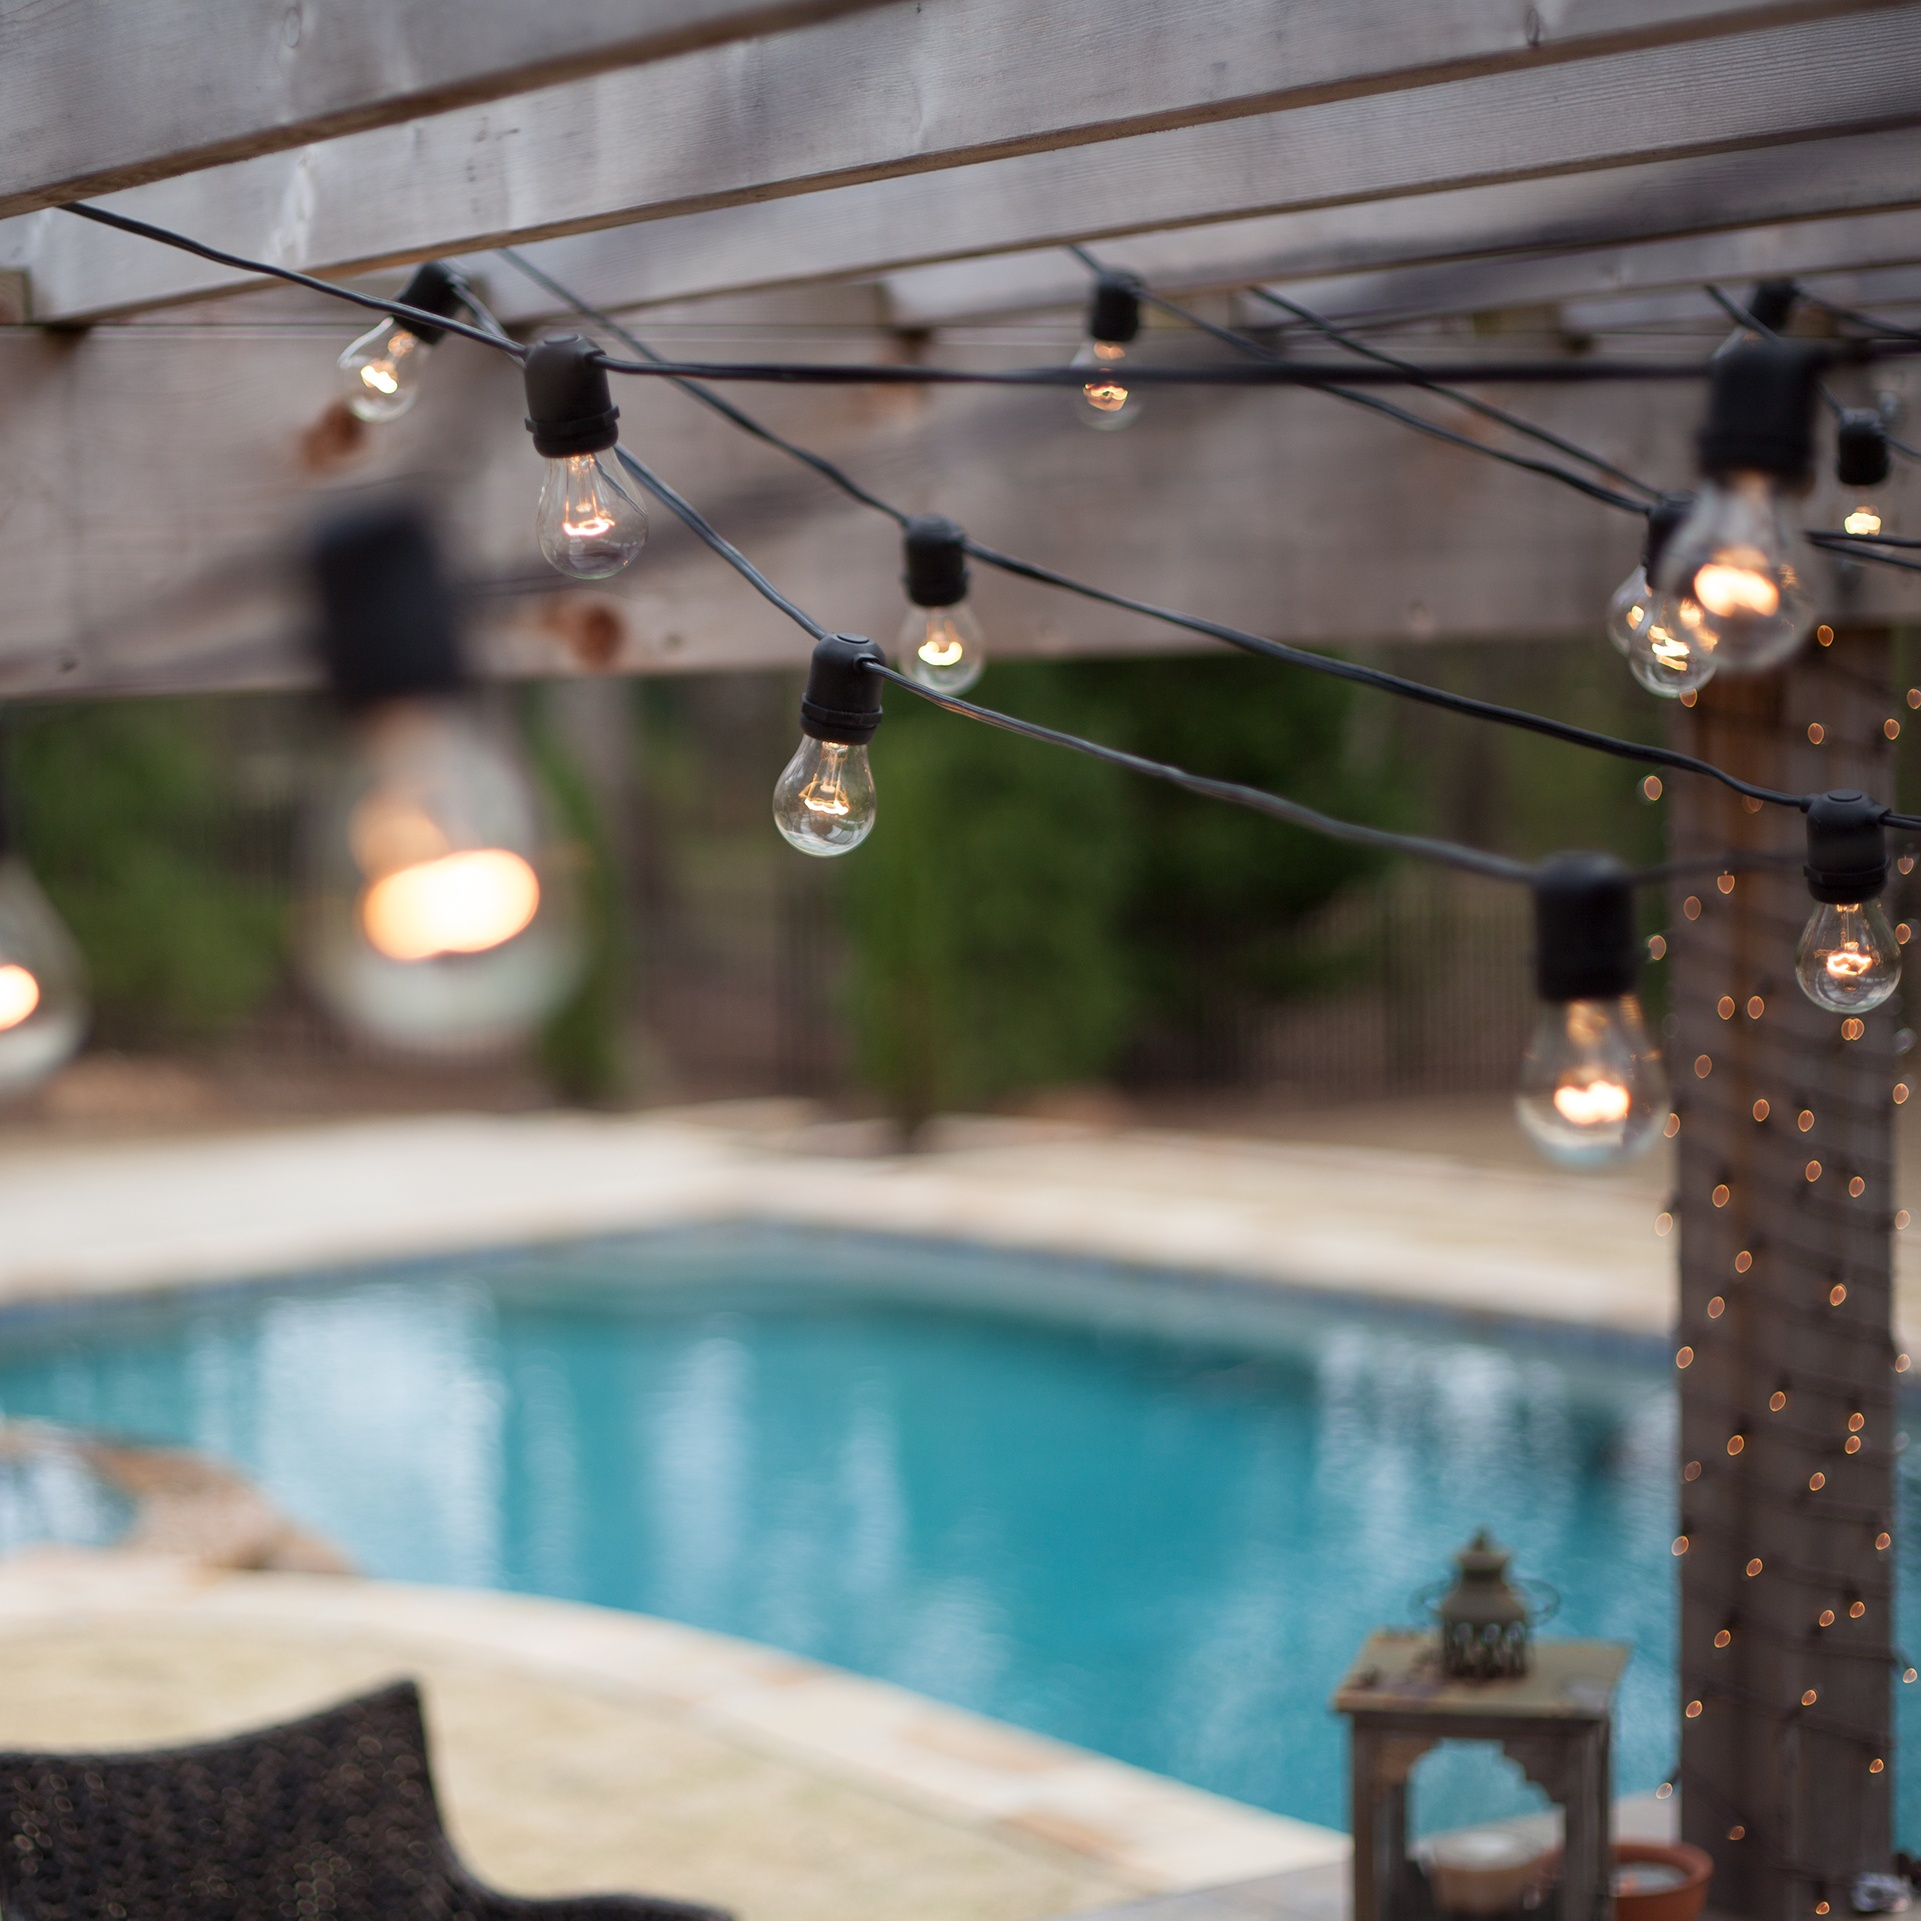 String Lights For Outdoor Deck : Patio Lights - Commercial Clear Patio String Lights, 24 A15 E26 Bulbs Black Wire